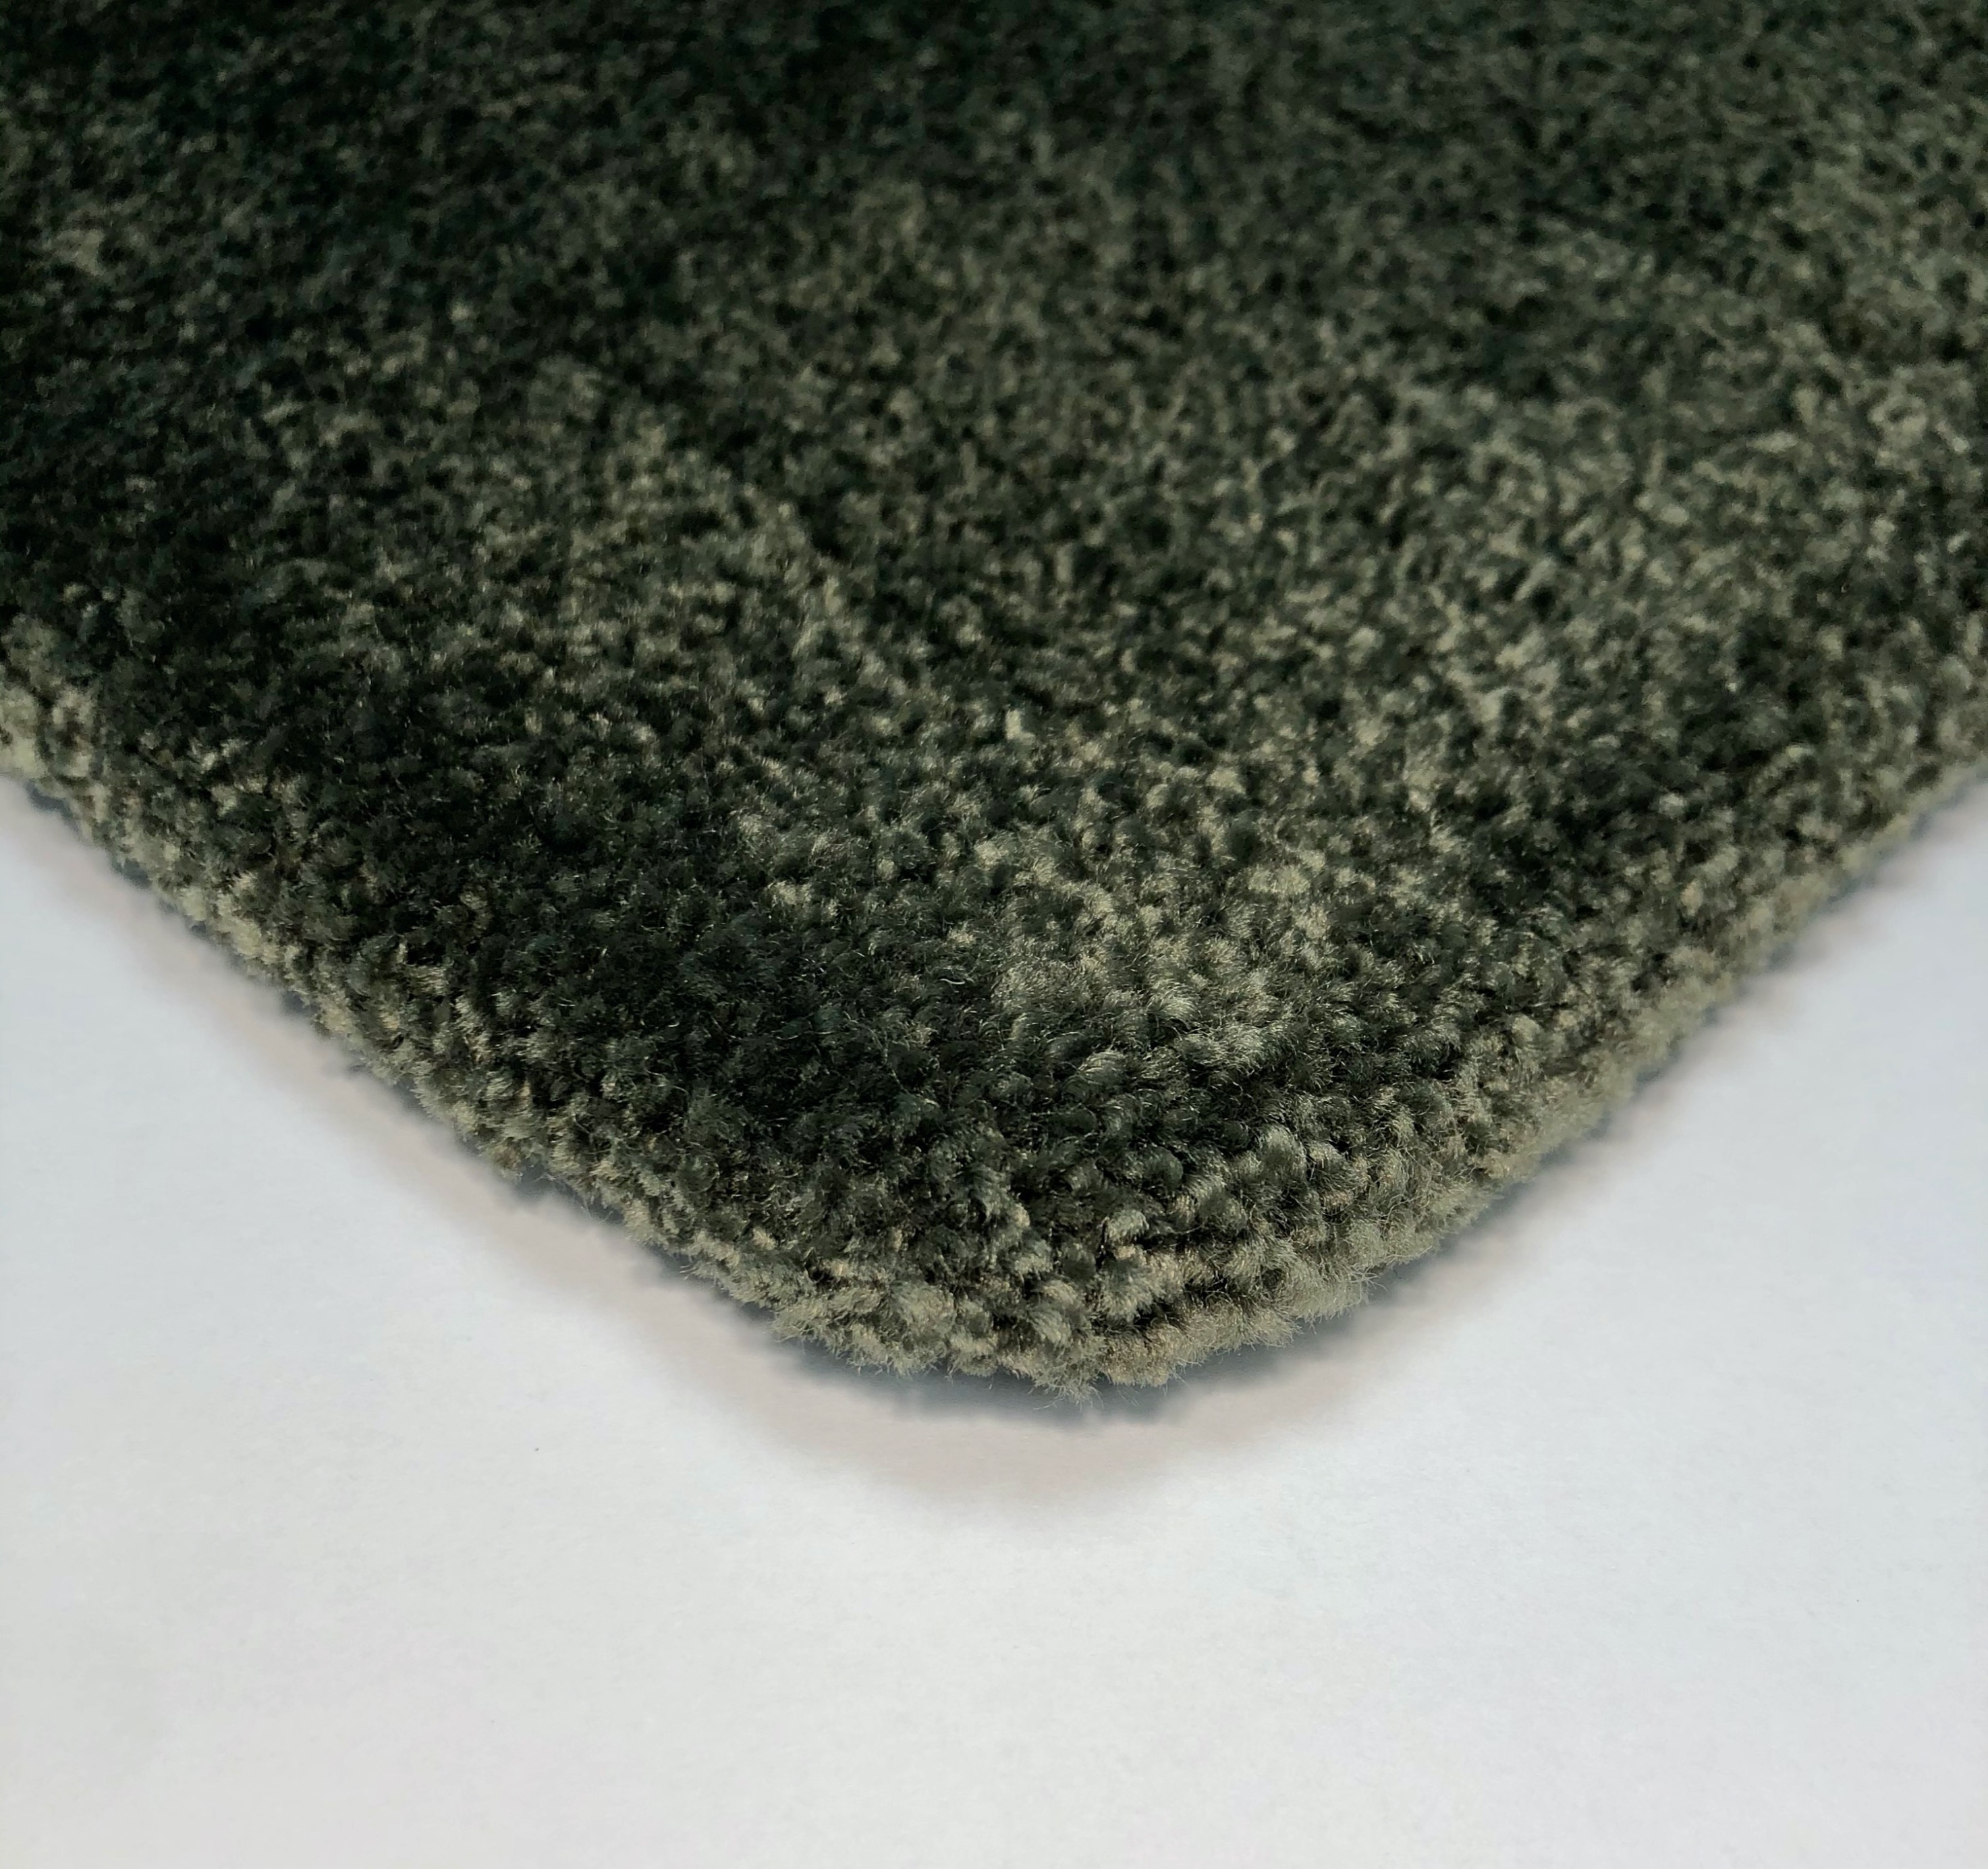 Volume rug 3mm felt backing (frontside), exclusive craftsmanship.